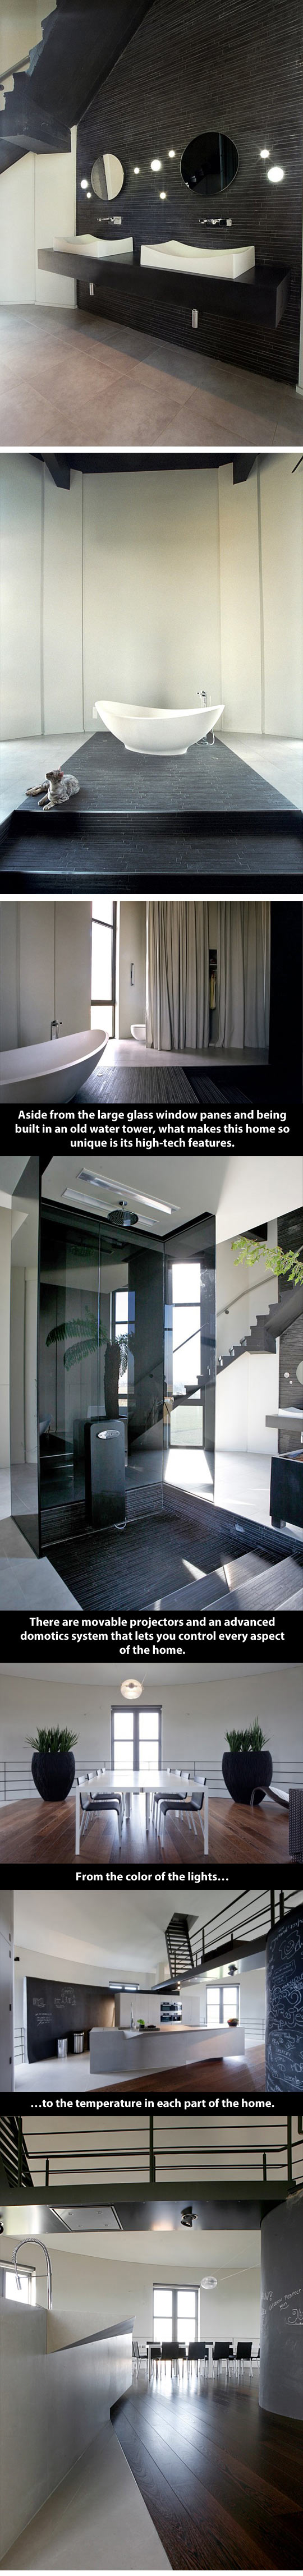 cool-water-tower-rich-bathroom